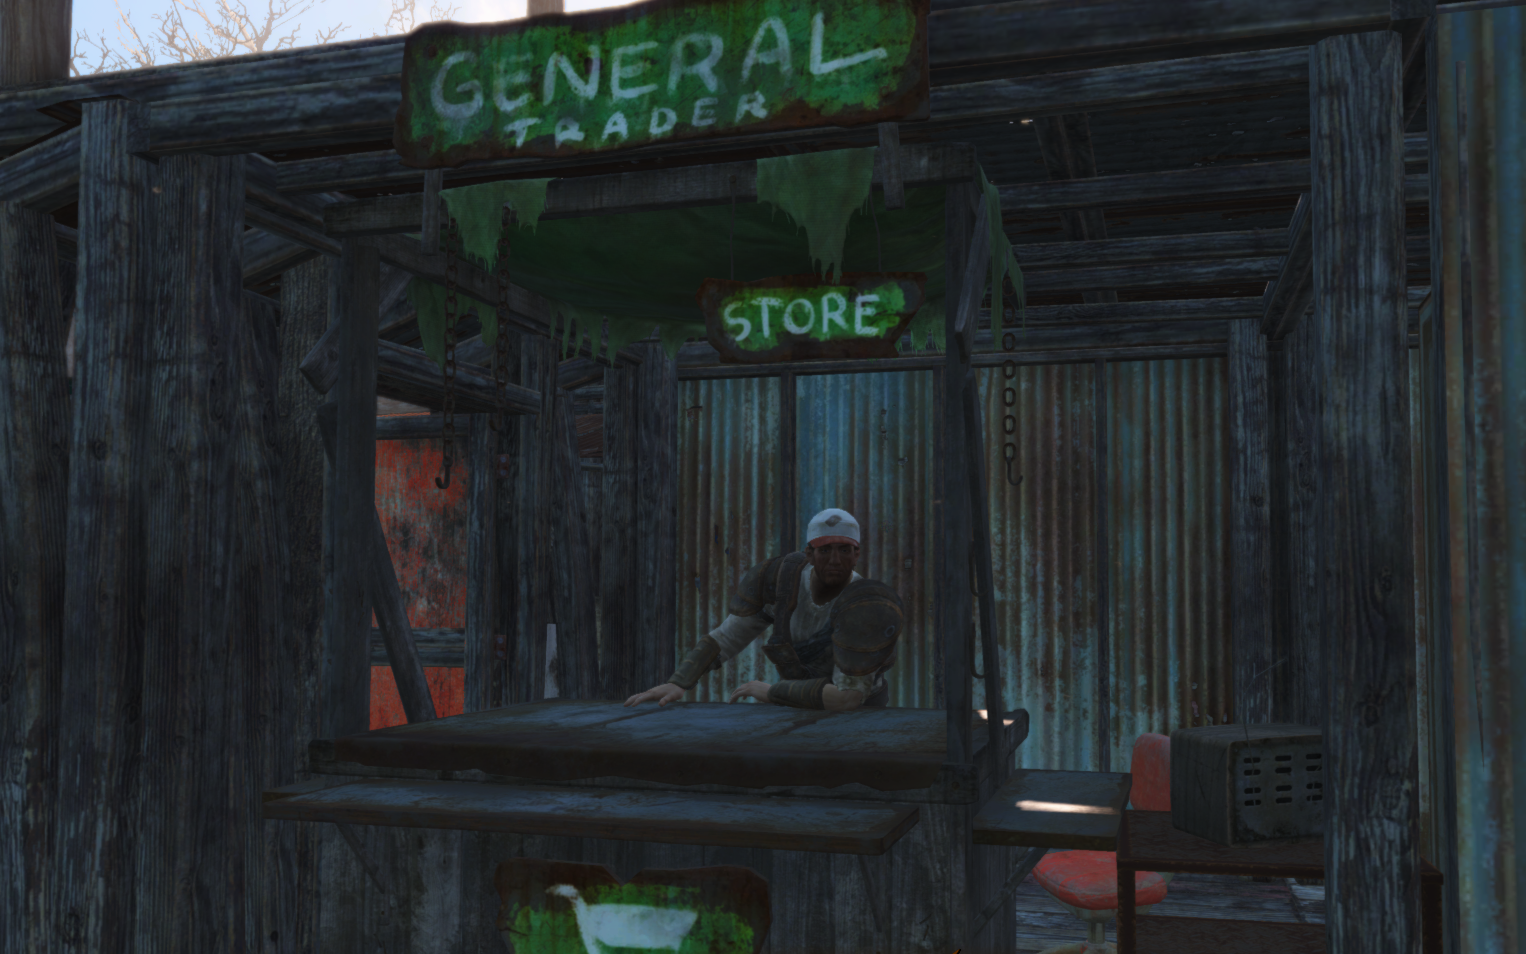 Trade Stands Fallout 4 : Trading post fallout wiki fandom powered by wikia